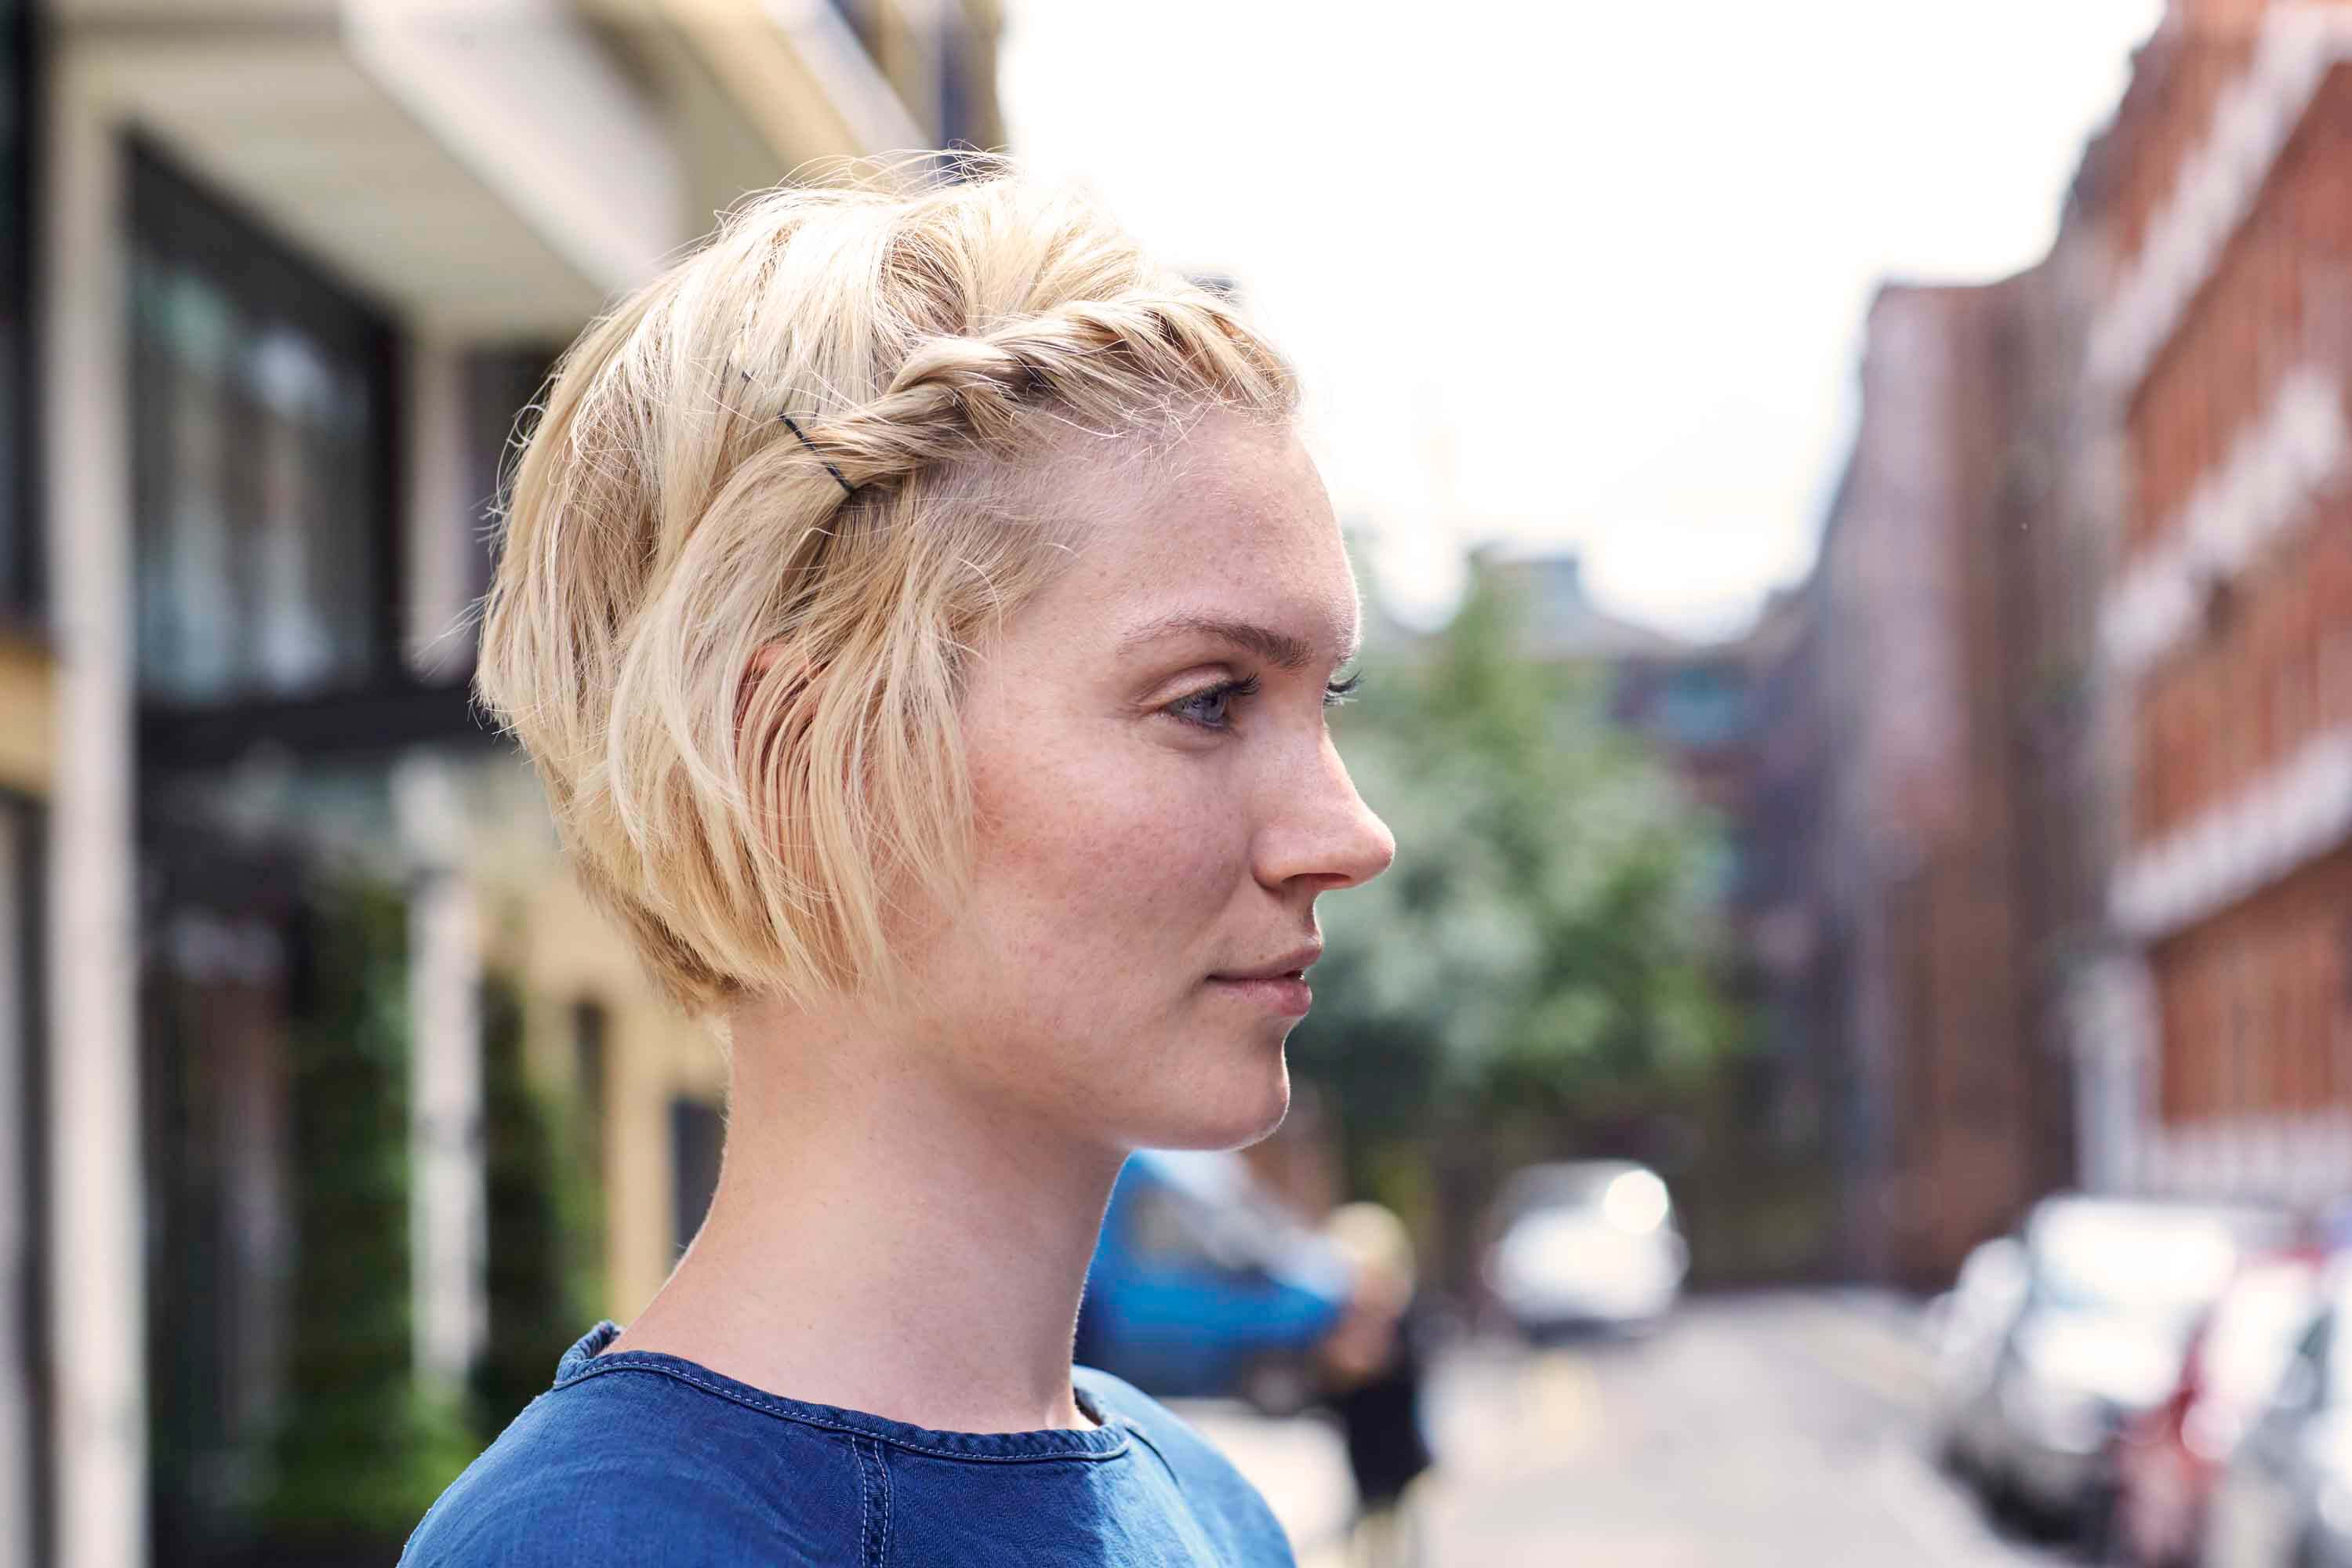 Hairstyles for short hair cool braids